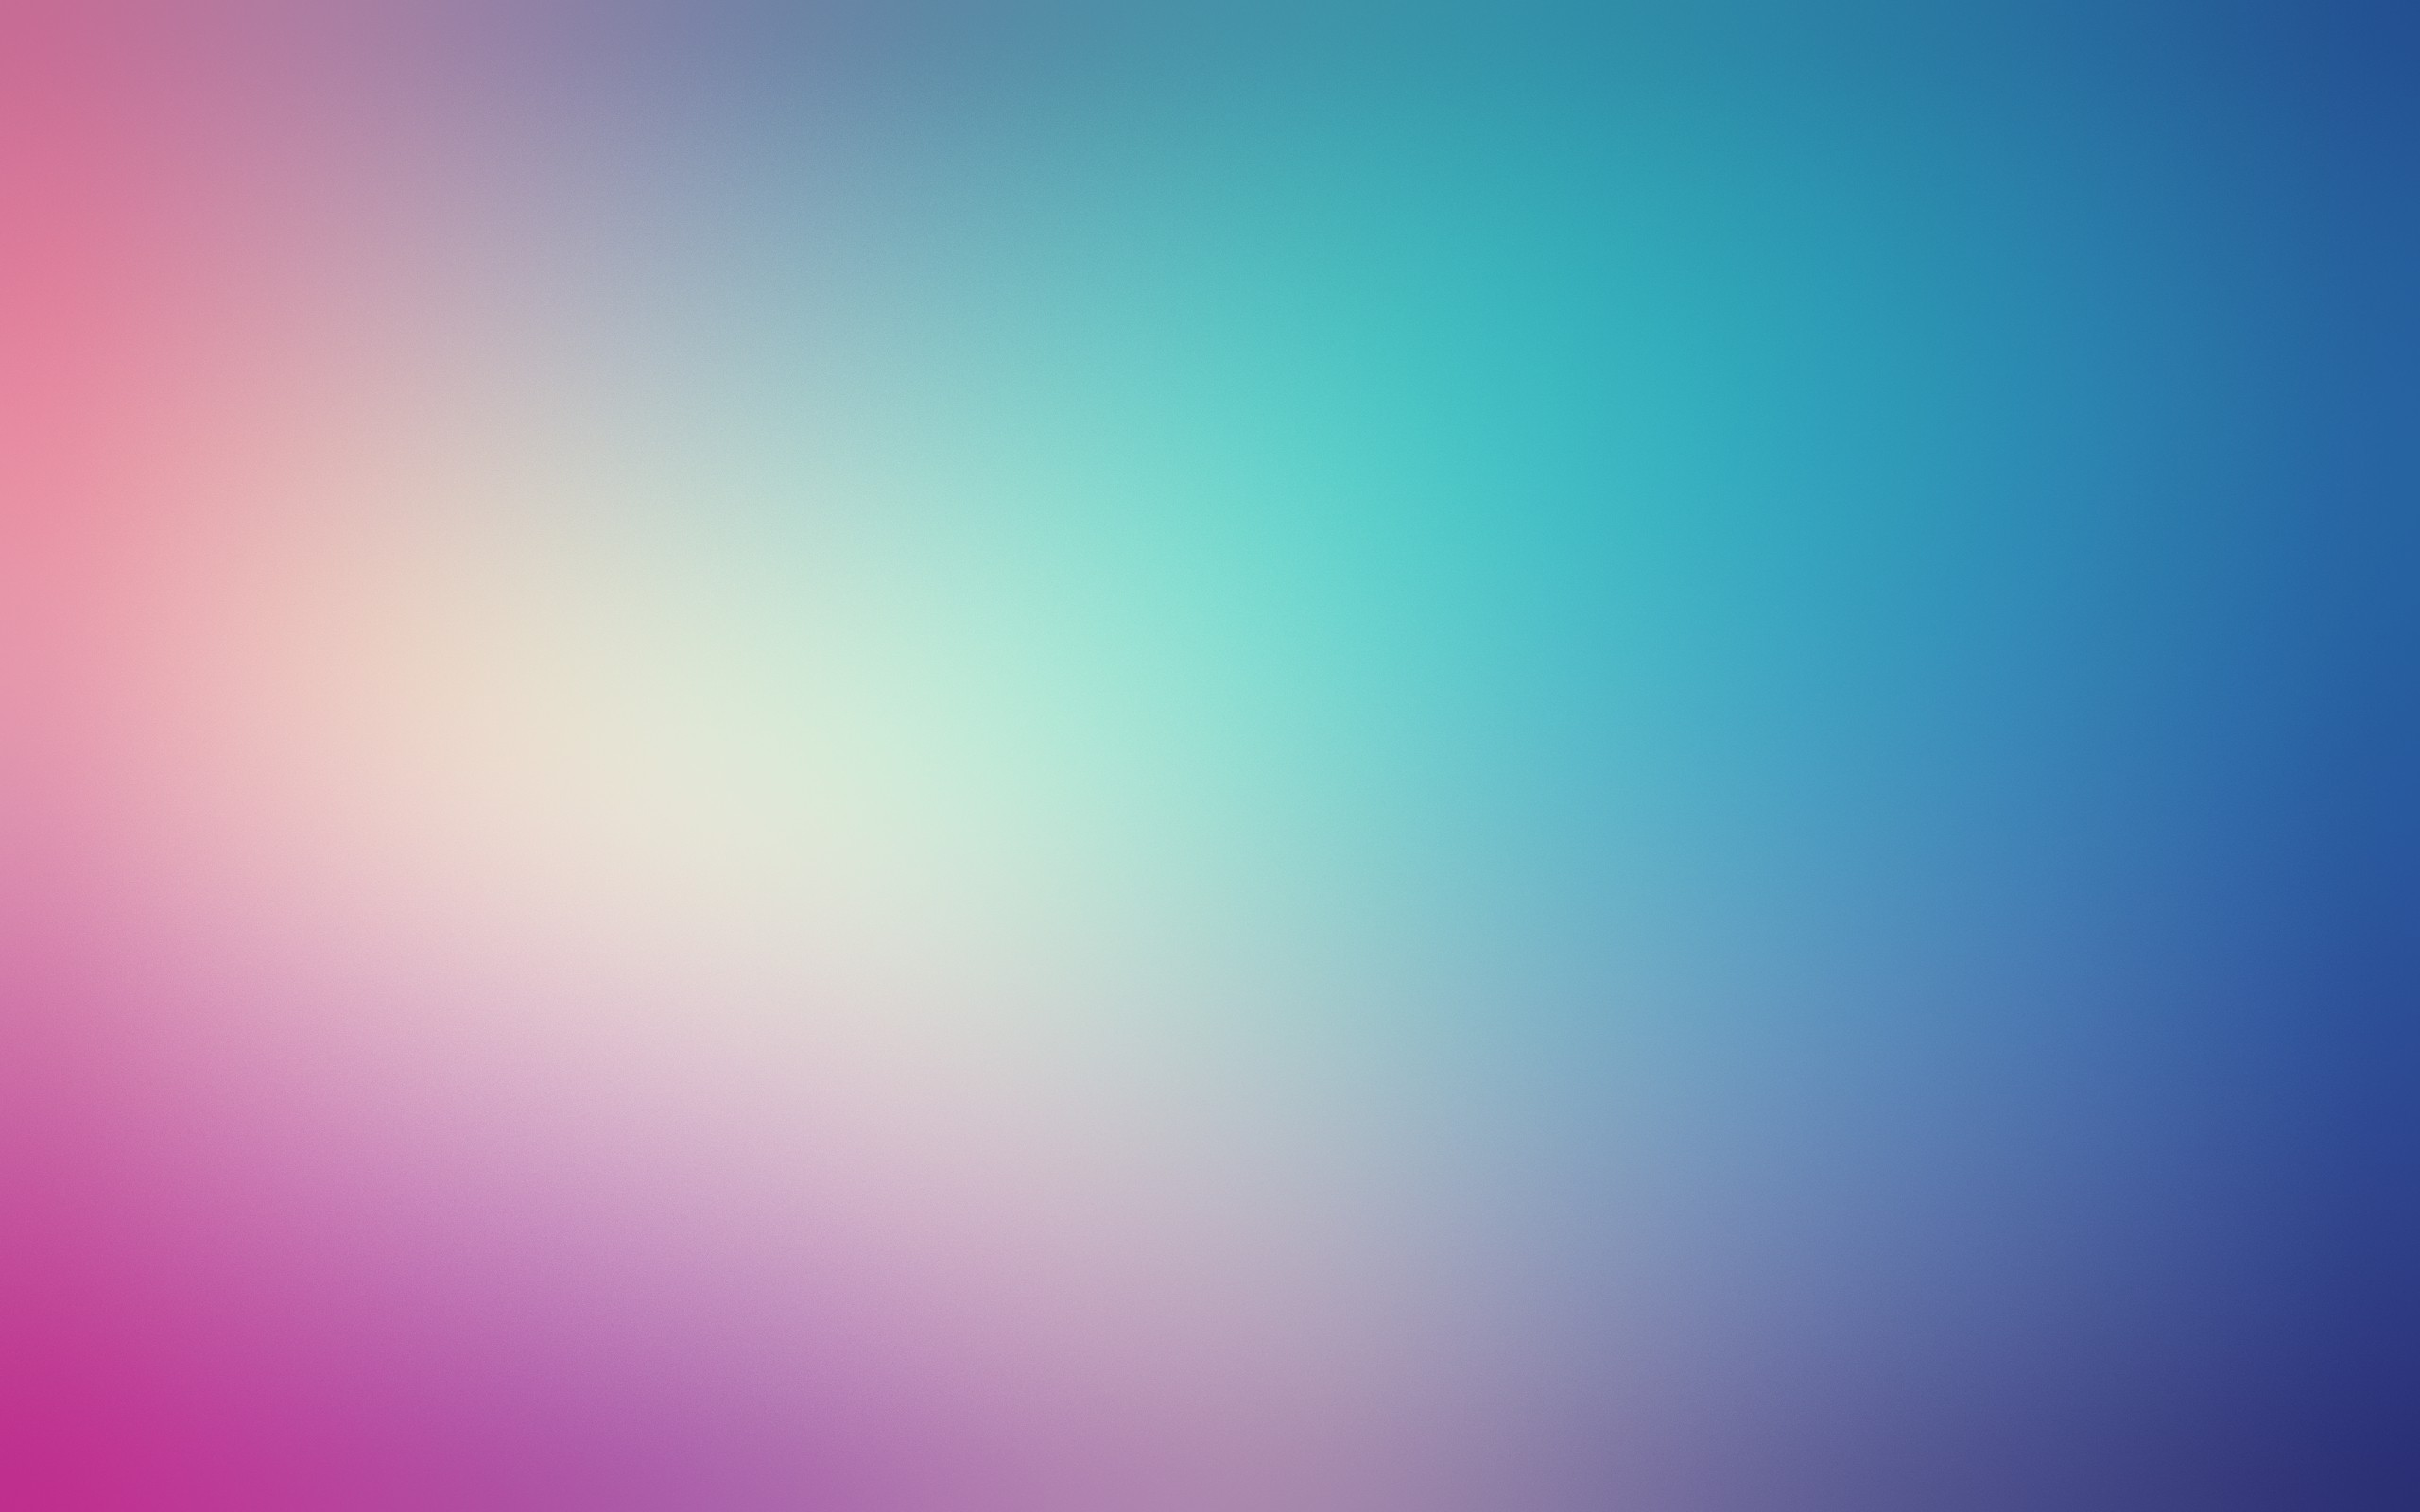 Download hd wallpapers of 40105 gradient, Simple Background, Colorful